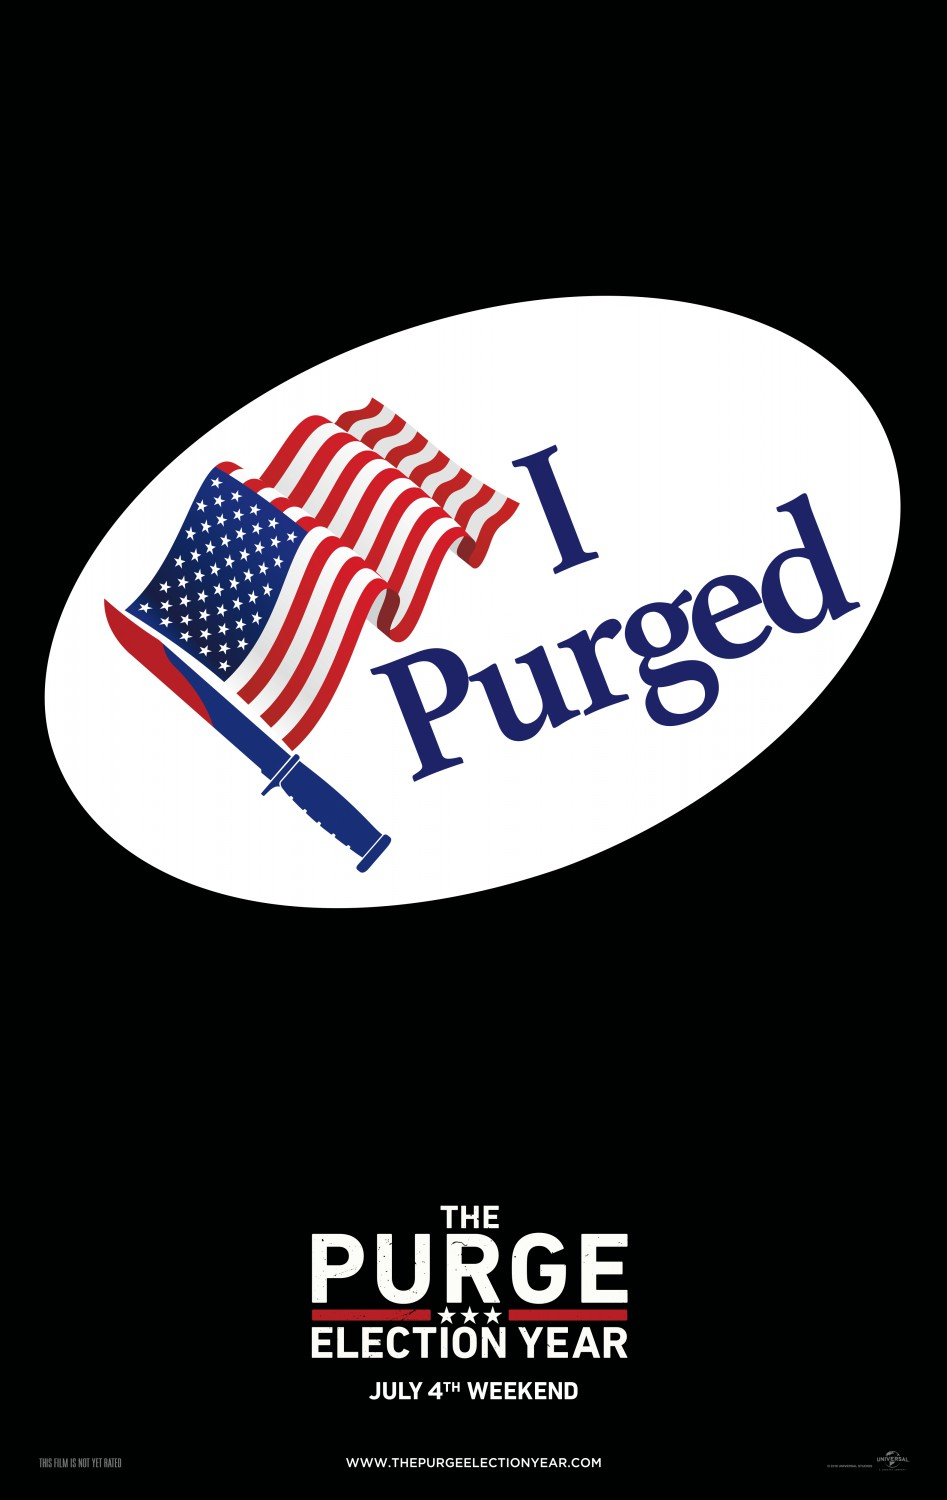 purge_election_year_xlg.jpg